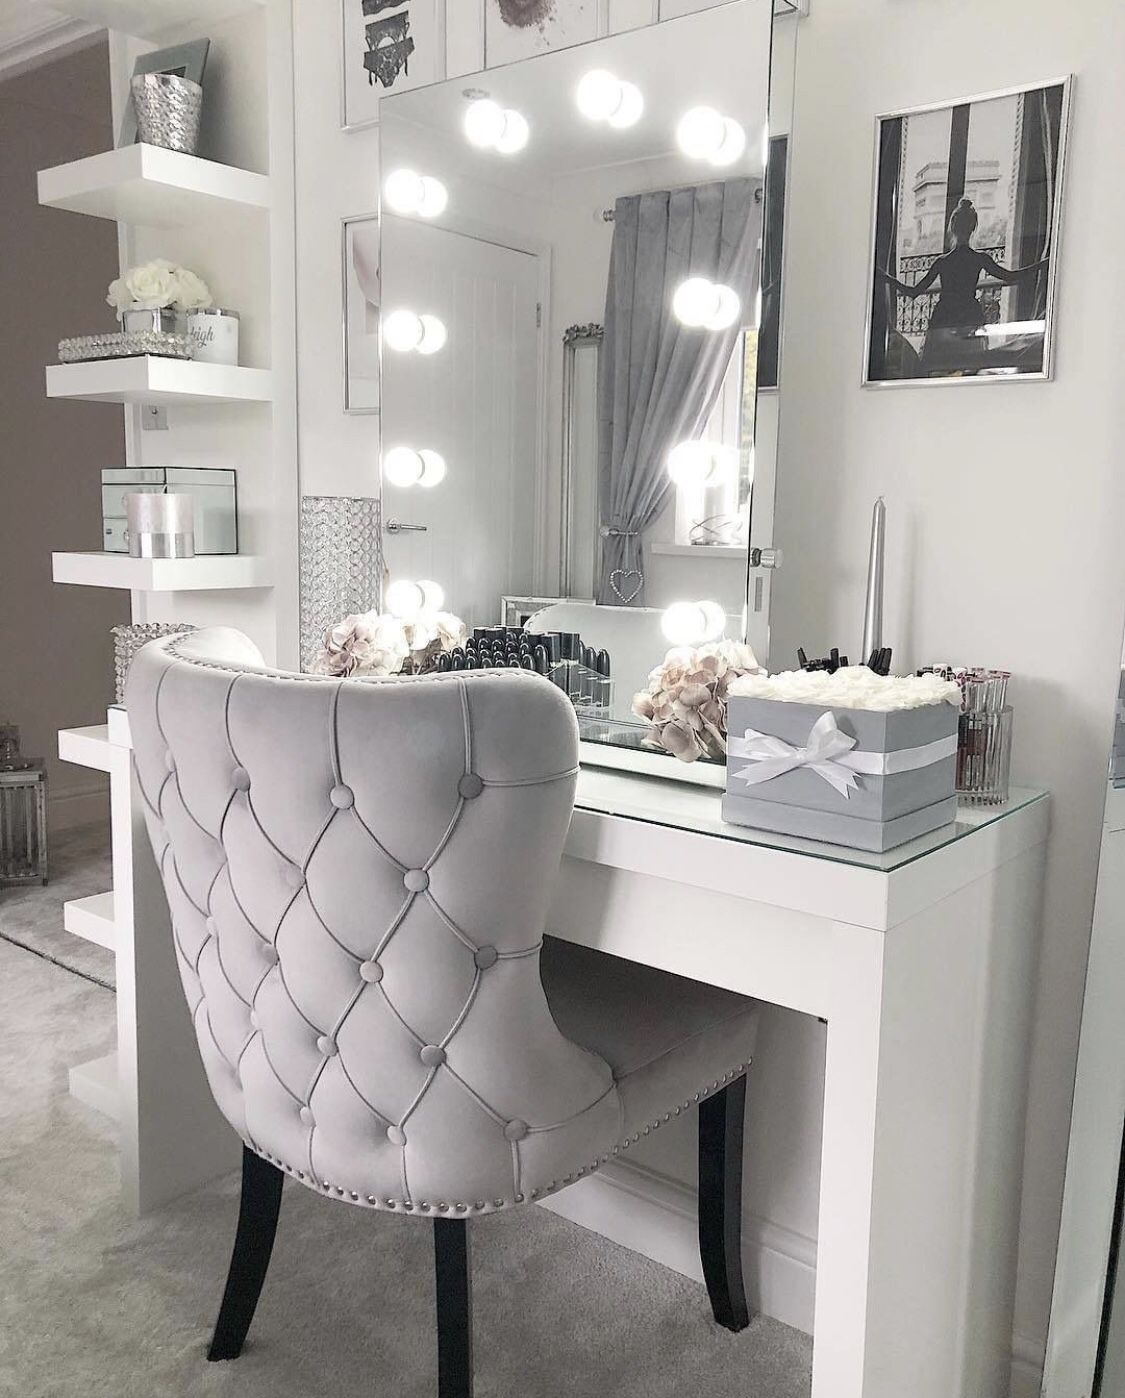 Fabulous Vanity Table Ideas Bedroom Decor Apartment Decor Room